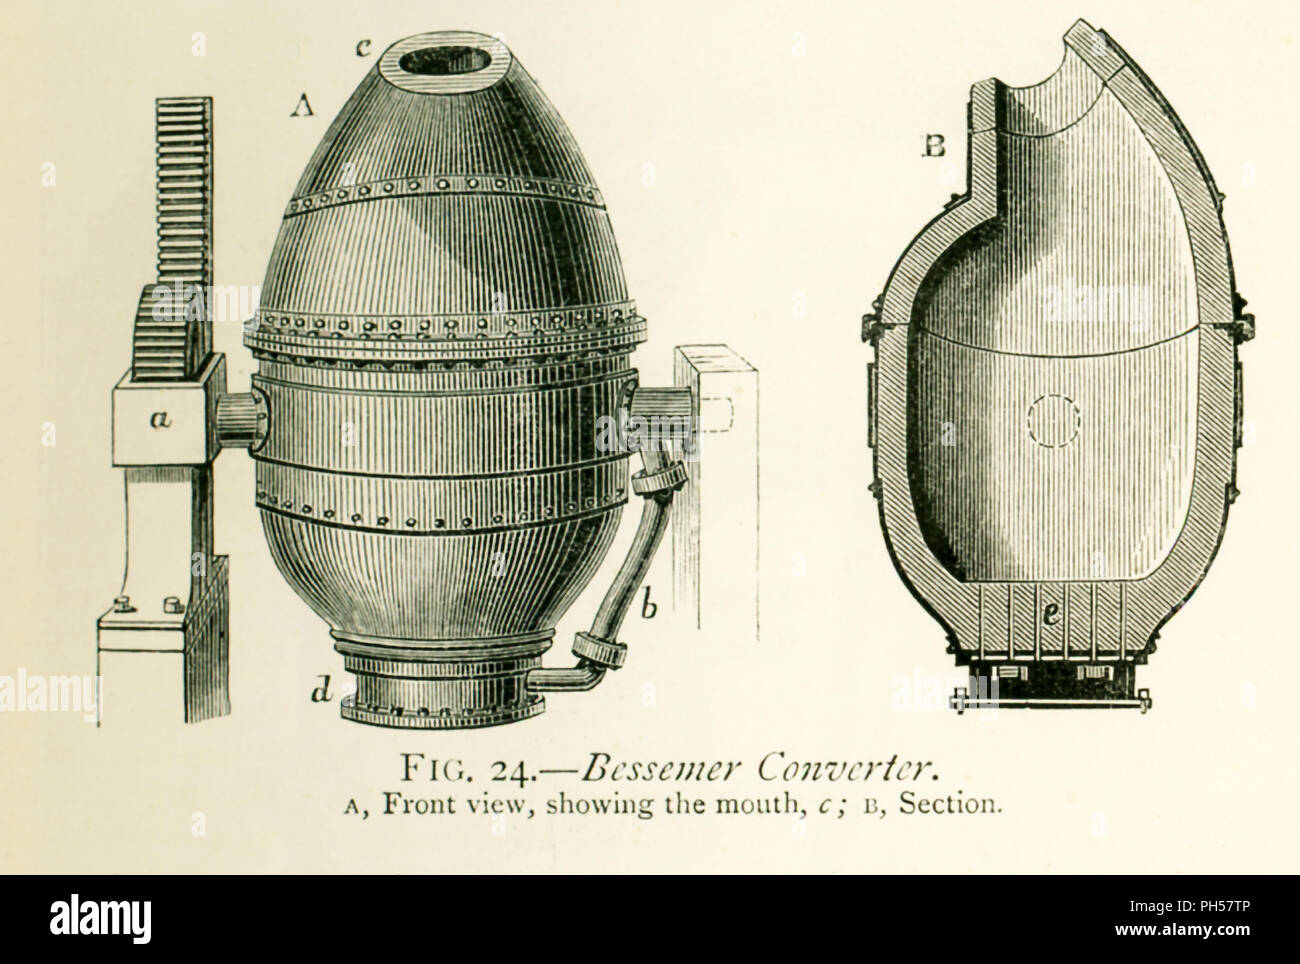 This illustration dates to the 1870s and shows a Bessemer converter. The caption reads: Bessemer Converter. A Front view, showing the mouth (c); B, Section. The Bessemer process was the first method discovered for mass-producing steel. It was named for Sir Henry Bessemer of England. The vessel, converter,  in which it took place is shown here. It is an egg-shaped vessel, about 3.5 feet in diameter, made of wrought iron in two parts and lined in the inside with a thick infusible coating made from ground fire-bricks and a certain kind of sandstone. The two parts are united by flanges strongly bo - Stock Image